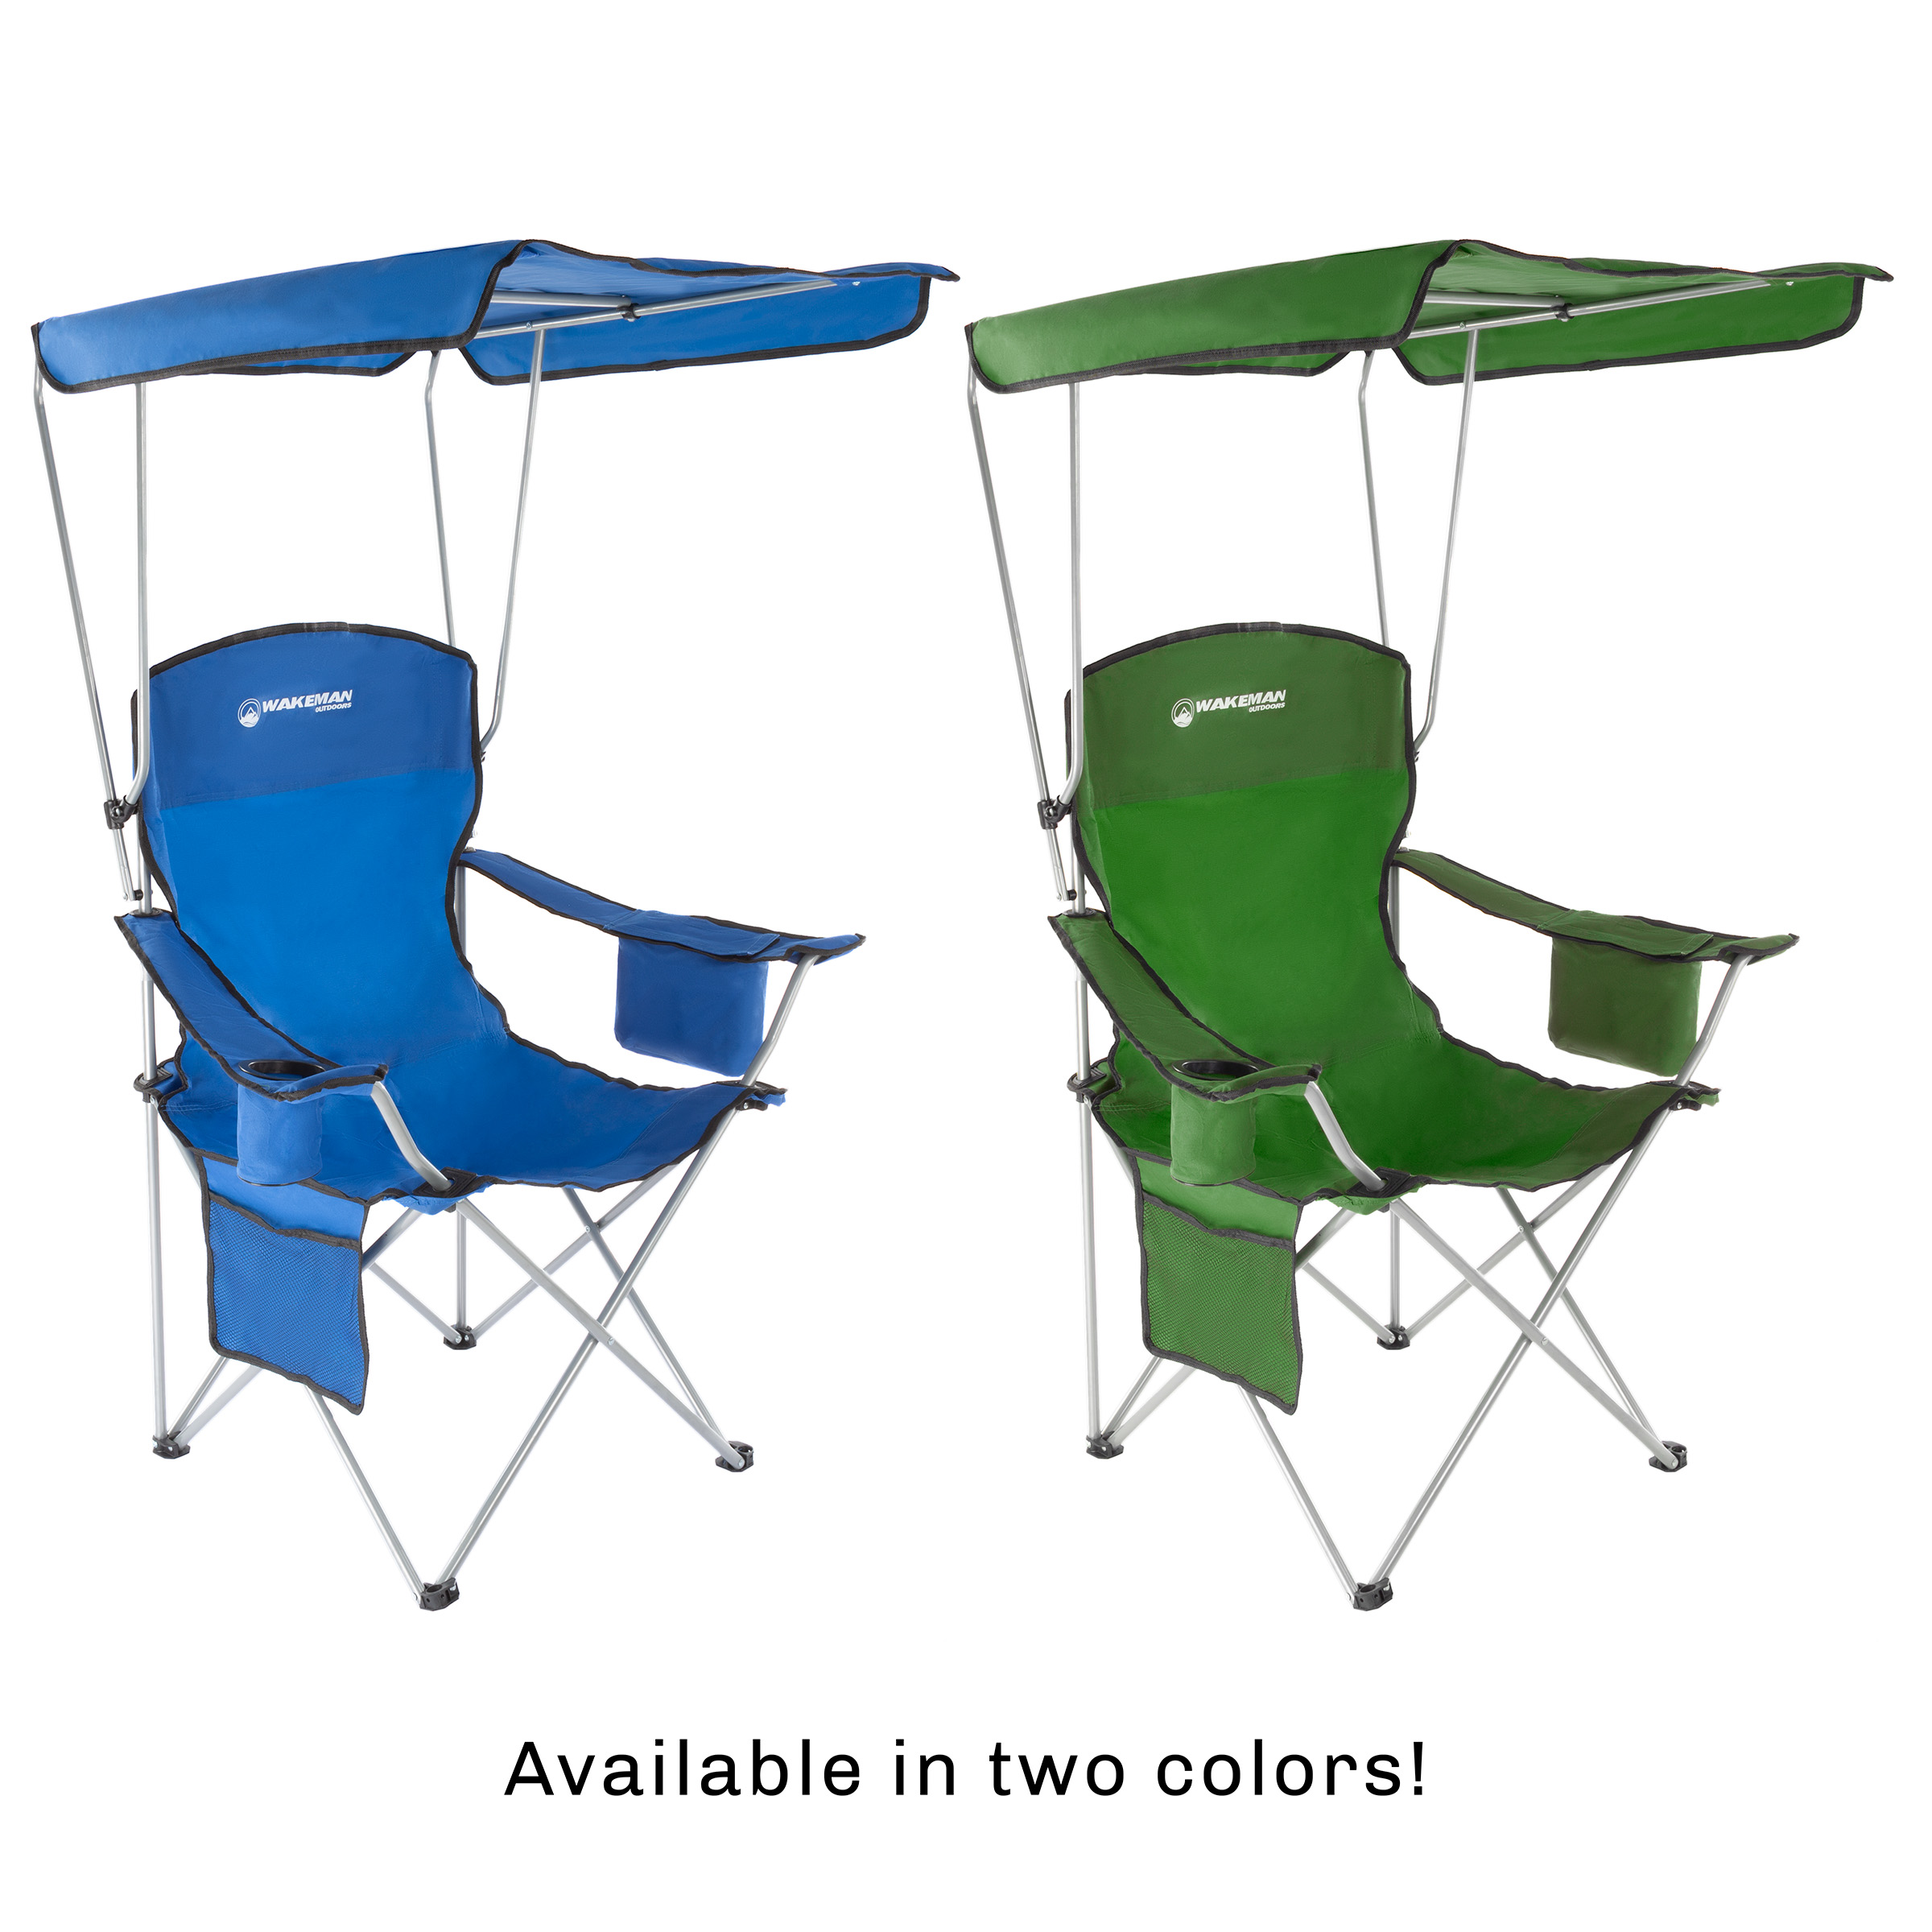 camping chairs with canopy red satin chair sashes camp 300lb capacity sunshade quad seat cup holder cooler carry bag tailgating fishing by wakeman outdoors green